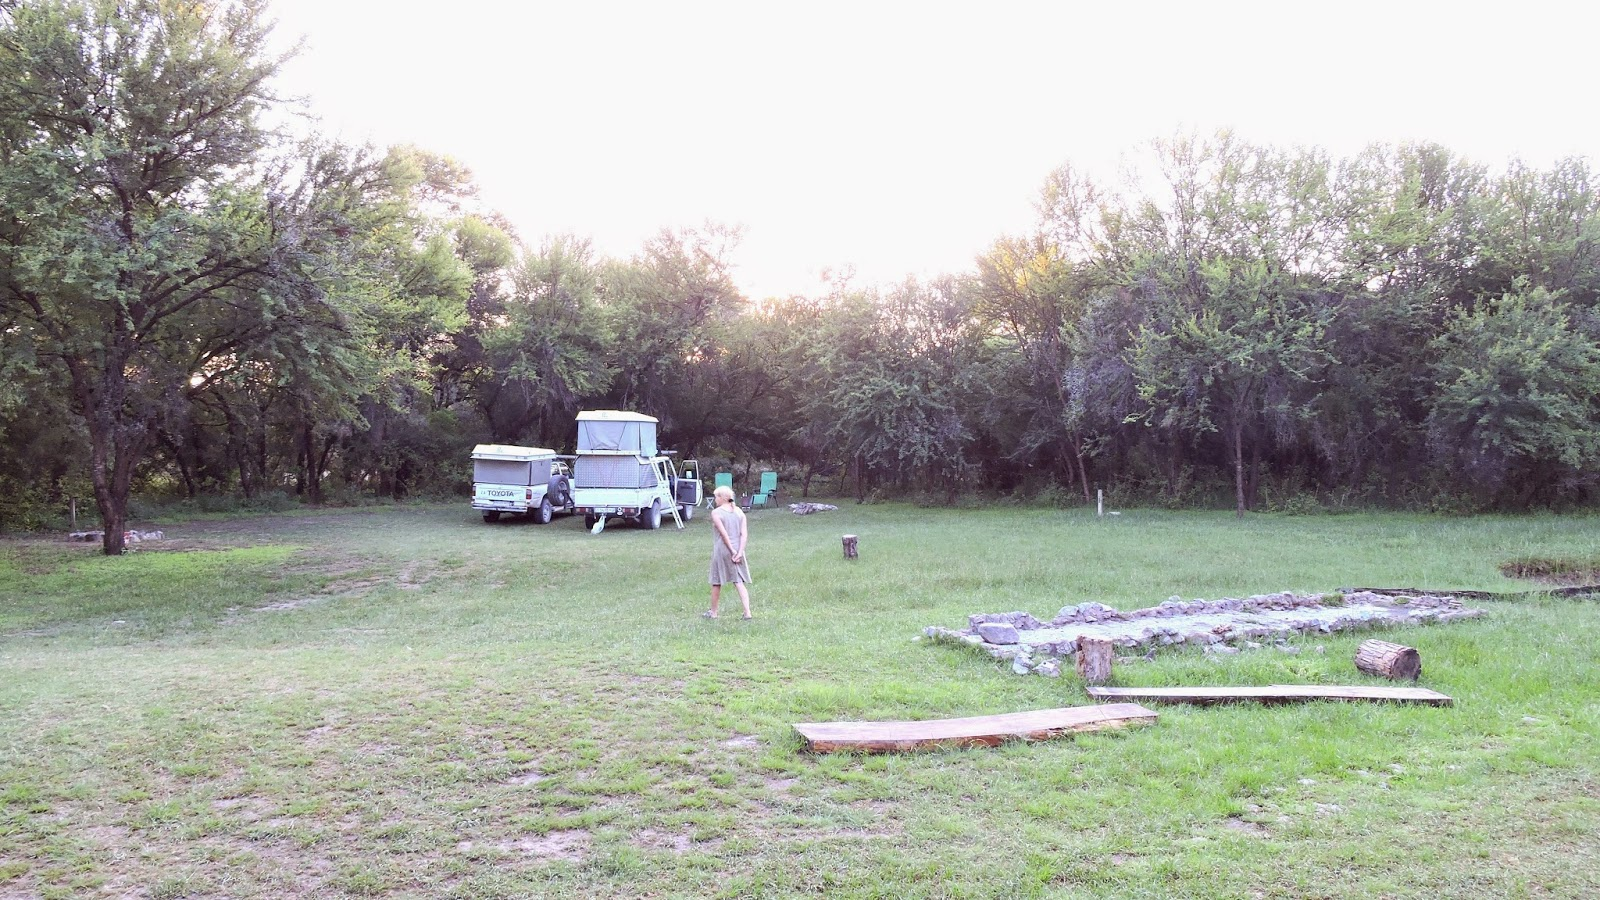 A green, spacious website with large trees at Bush baby Lodge